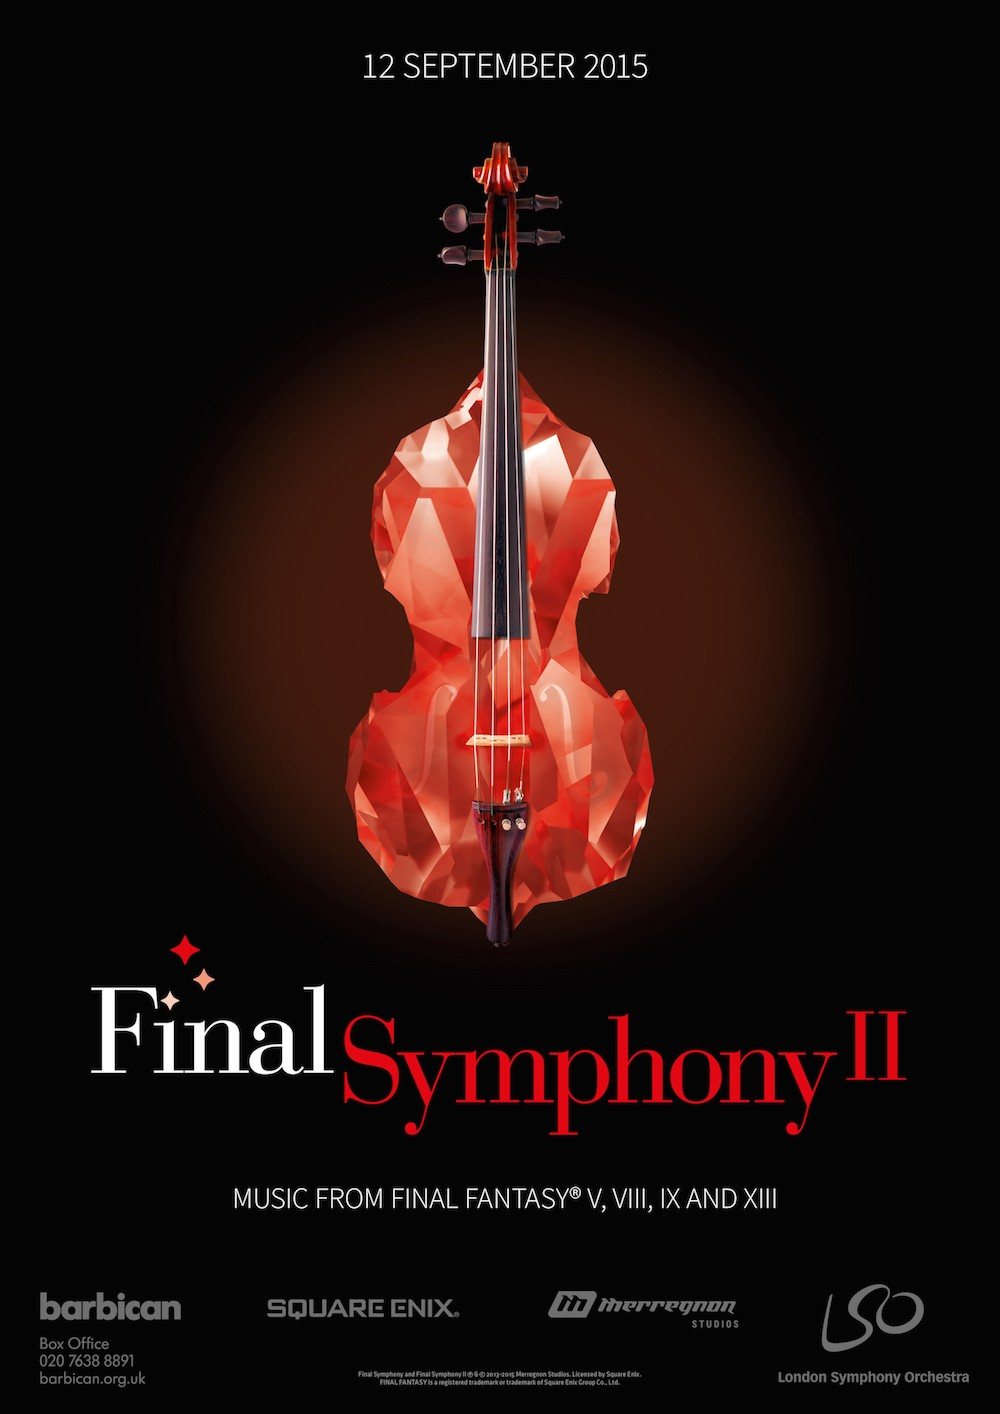 New London Final Fantasy concert, Final Symphony II Announce Today!